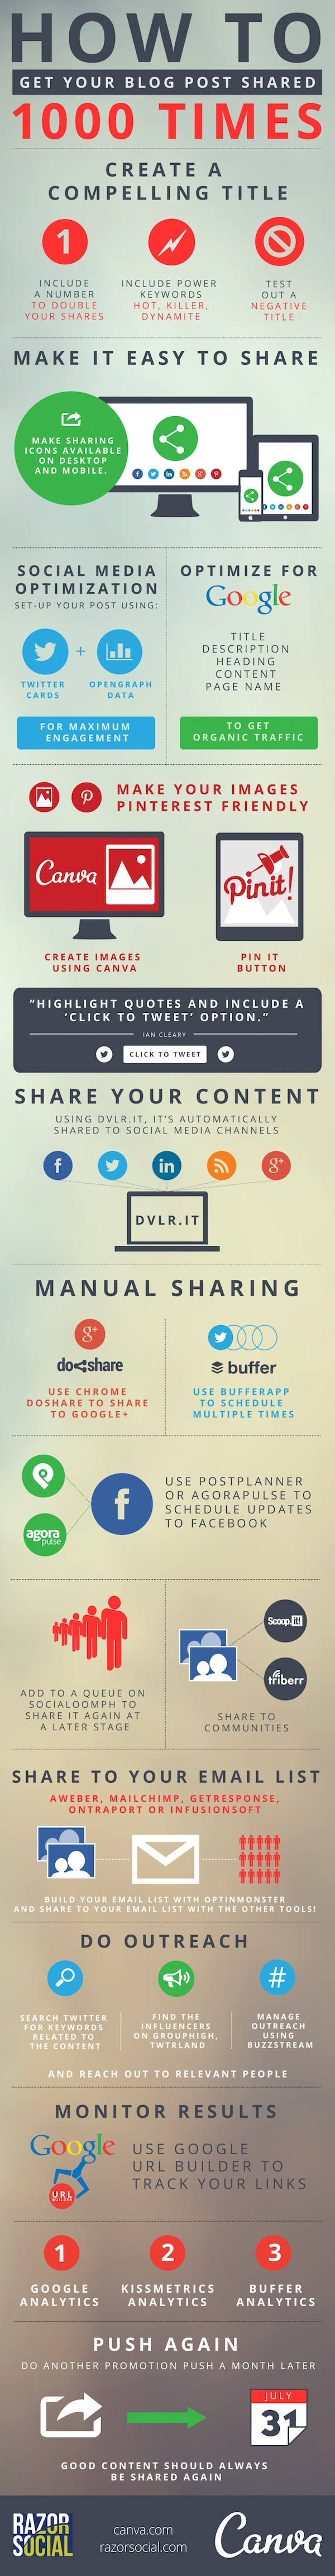 Infographic: How To Get Your Blog Post Shared 1000 Times